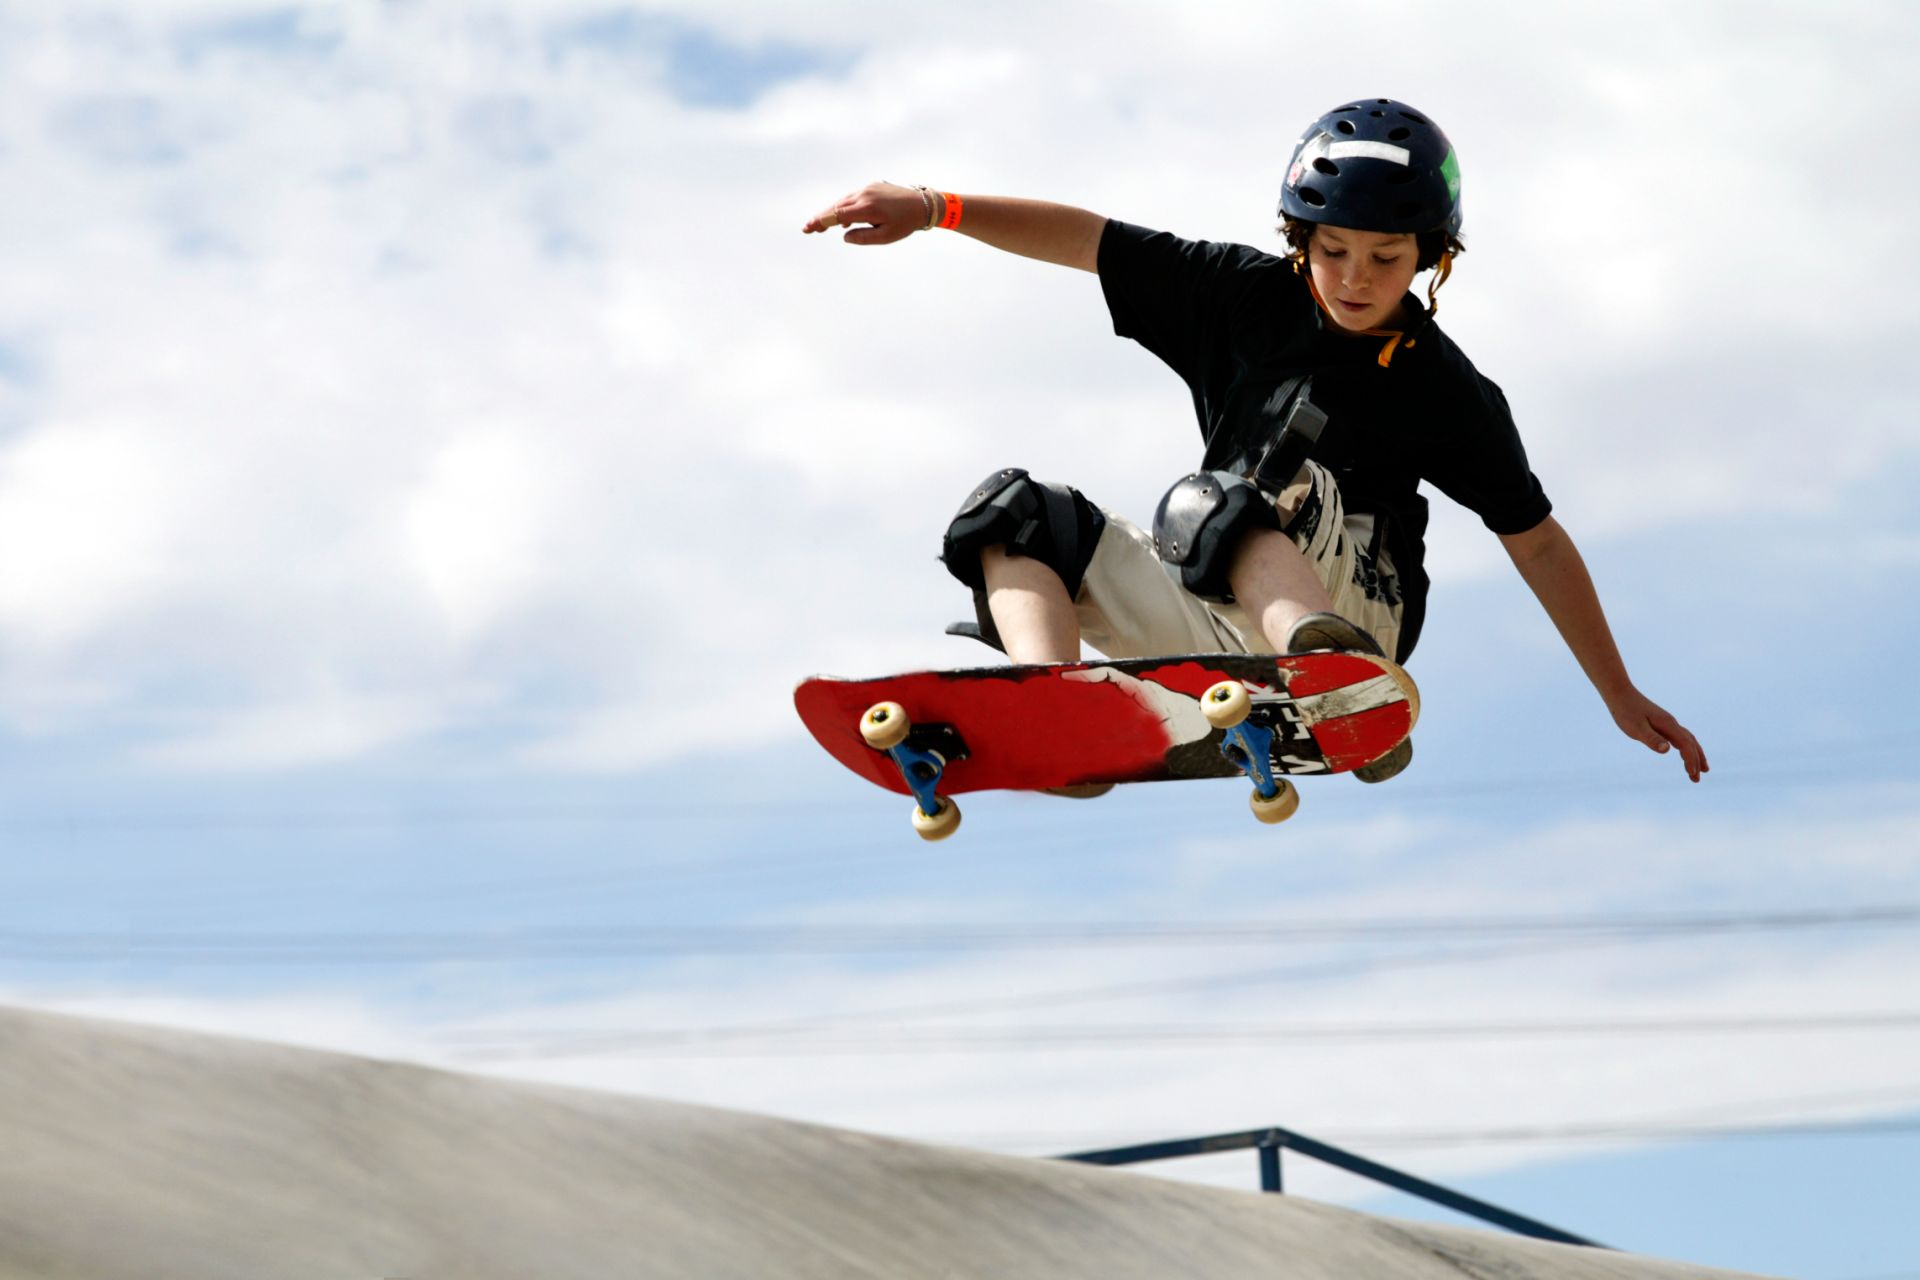 Facts about Skateboarding for Kids | DK Find Out